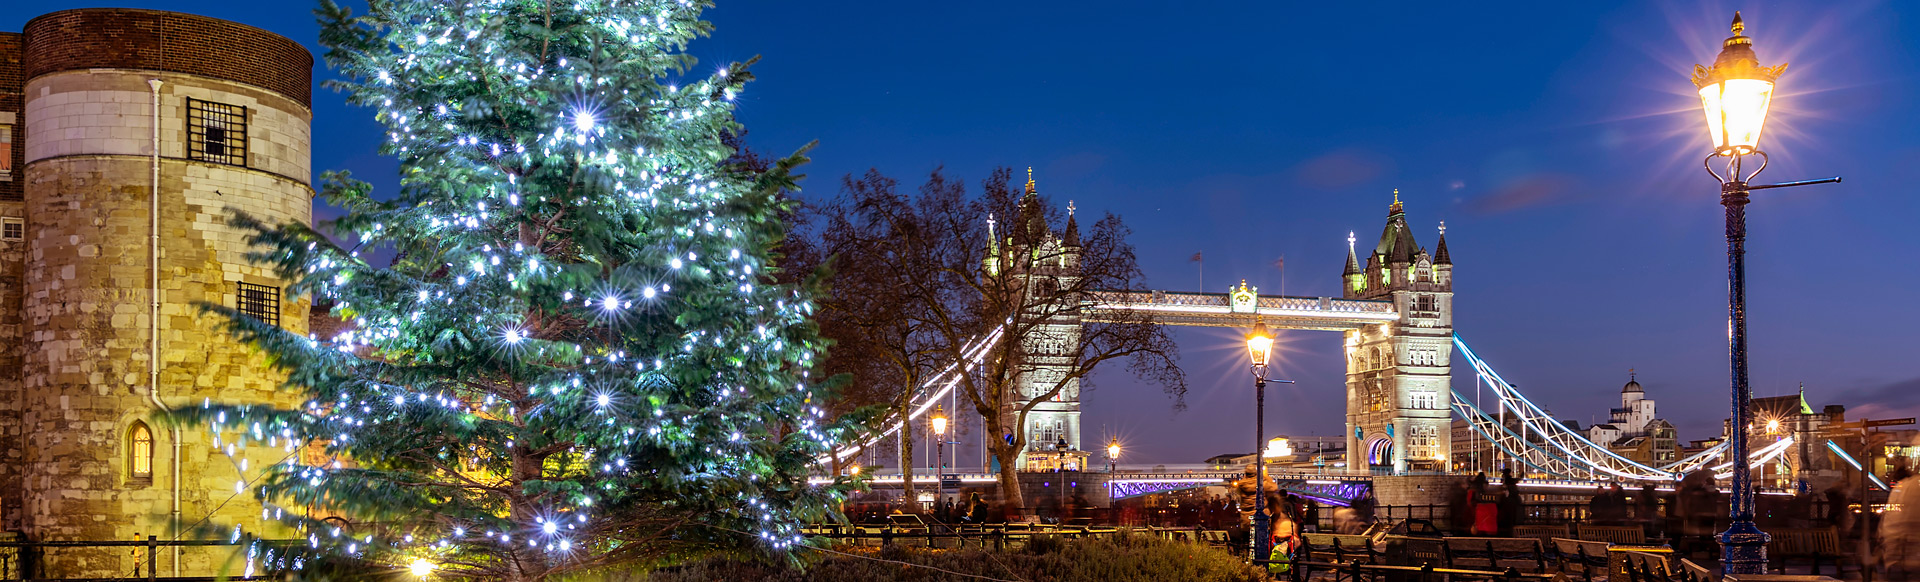 When Is Christmas During 2020 Christmas in London 2020   What's On   visitlondon.com